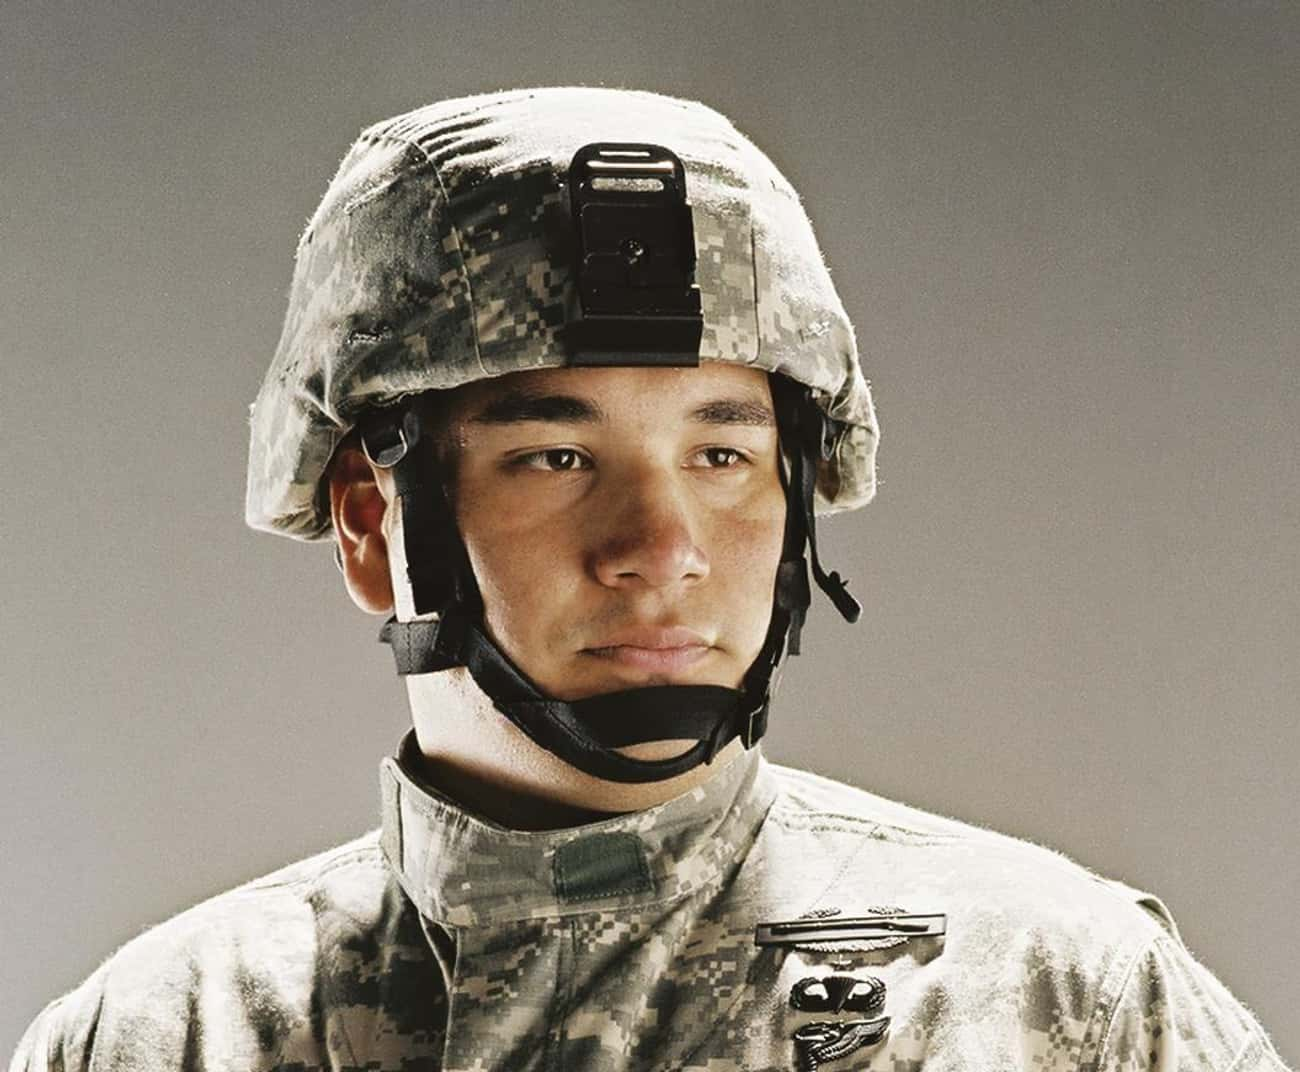 Manufacture Military Equipment And Uniforms